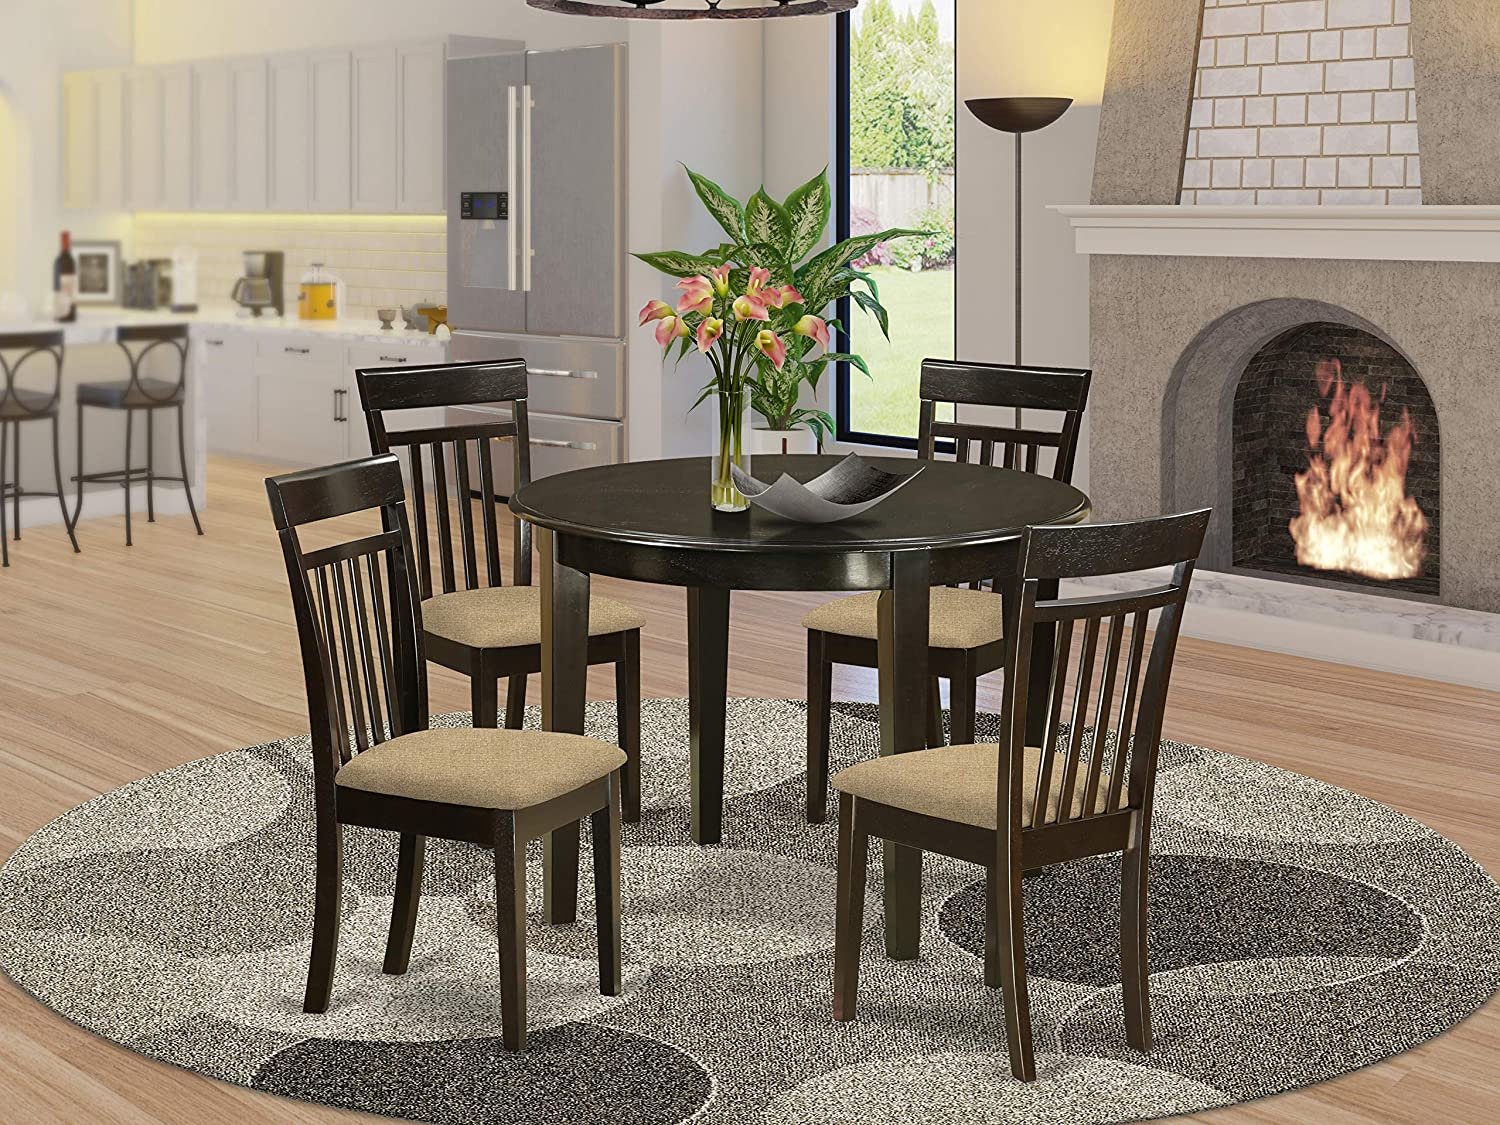 East West Furniture BOCA5-CAP-C Round Dinette Set 5 Piece - Linen Fabric Kitchen Dining Chairs Seat - Cappuccino Finish Dining Room Table and Structure